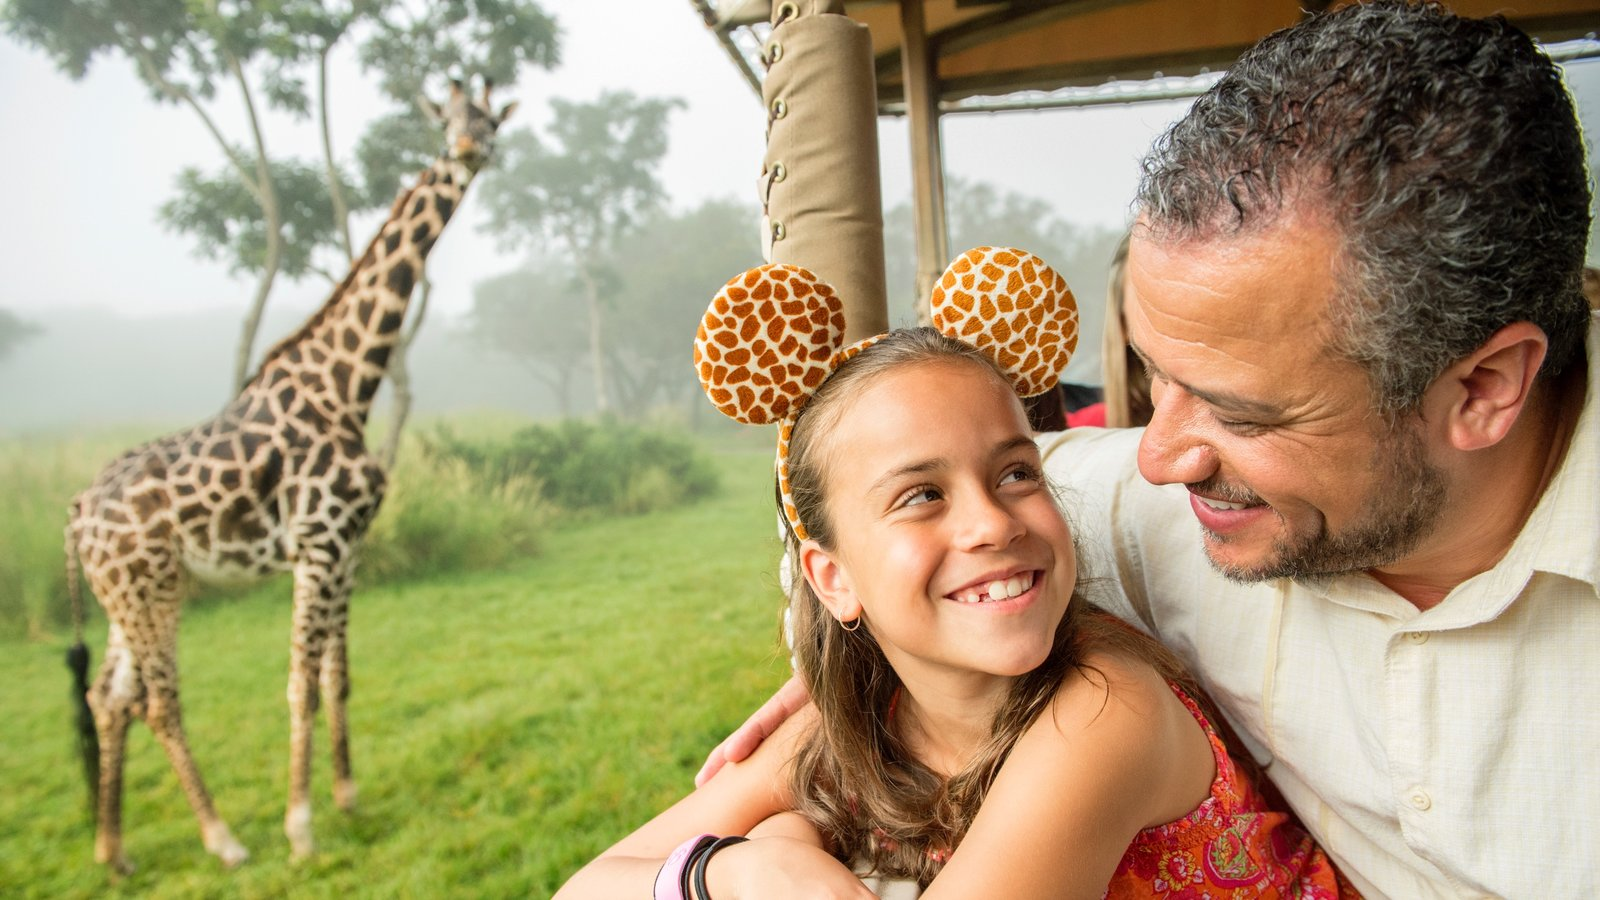 Disney\'s Animal Kingdom® Theme Park showing land animals and safari adventures as well as a family